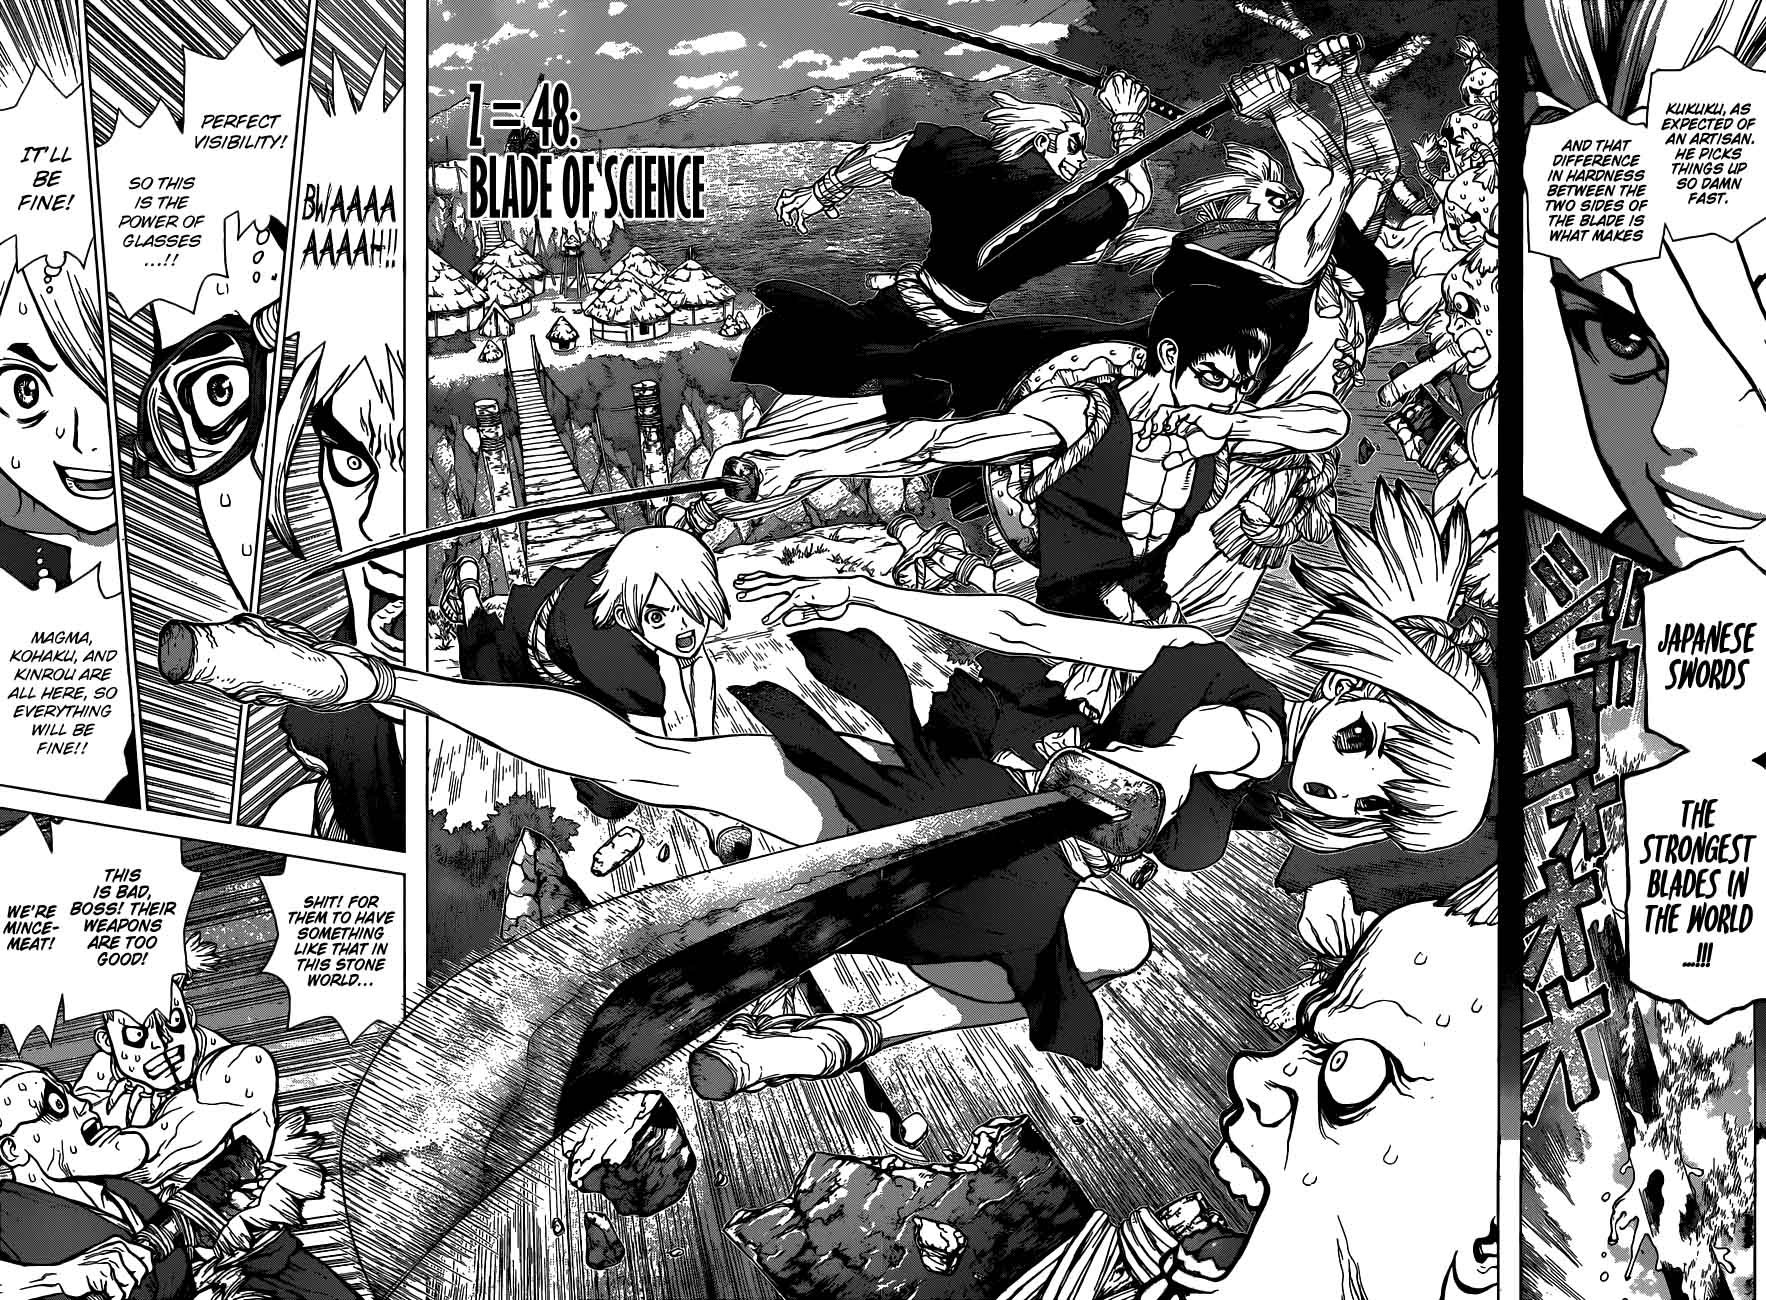 Dr. Stone : Chapter 48 - Blade of Science image 004